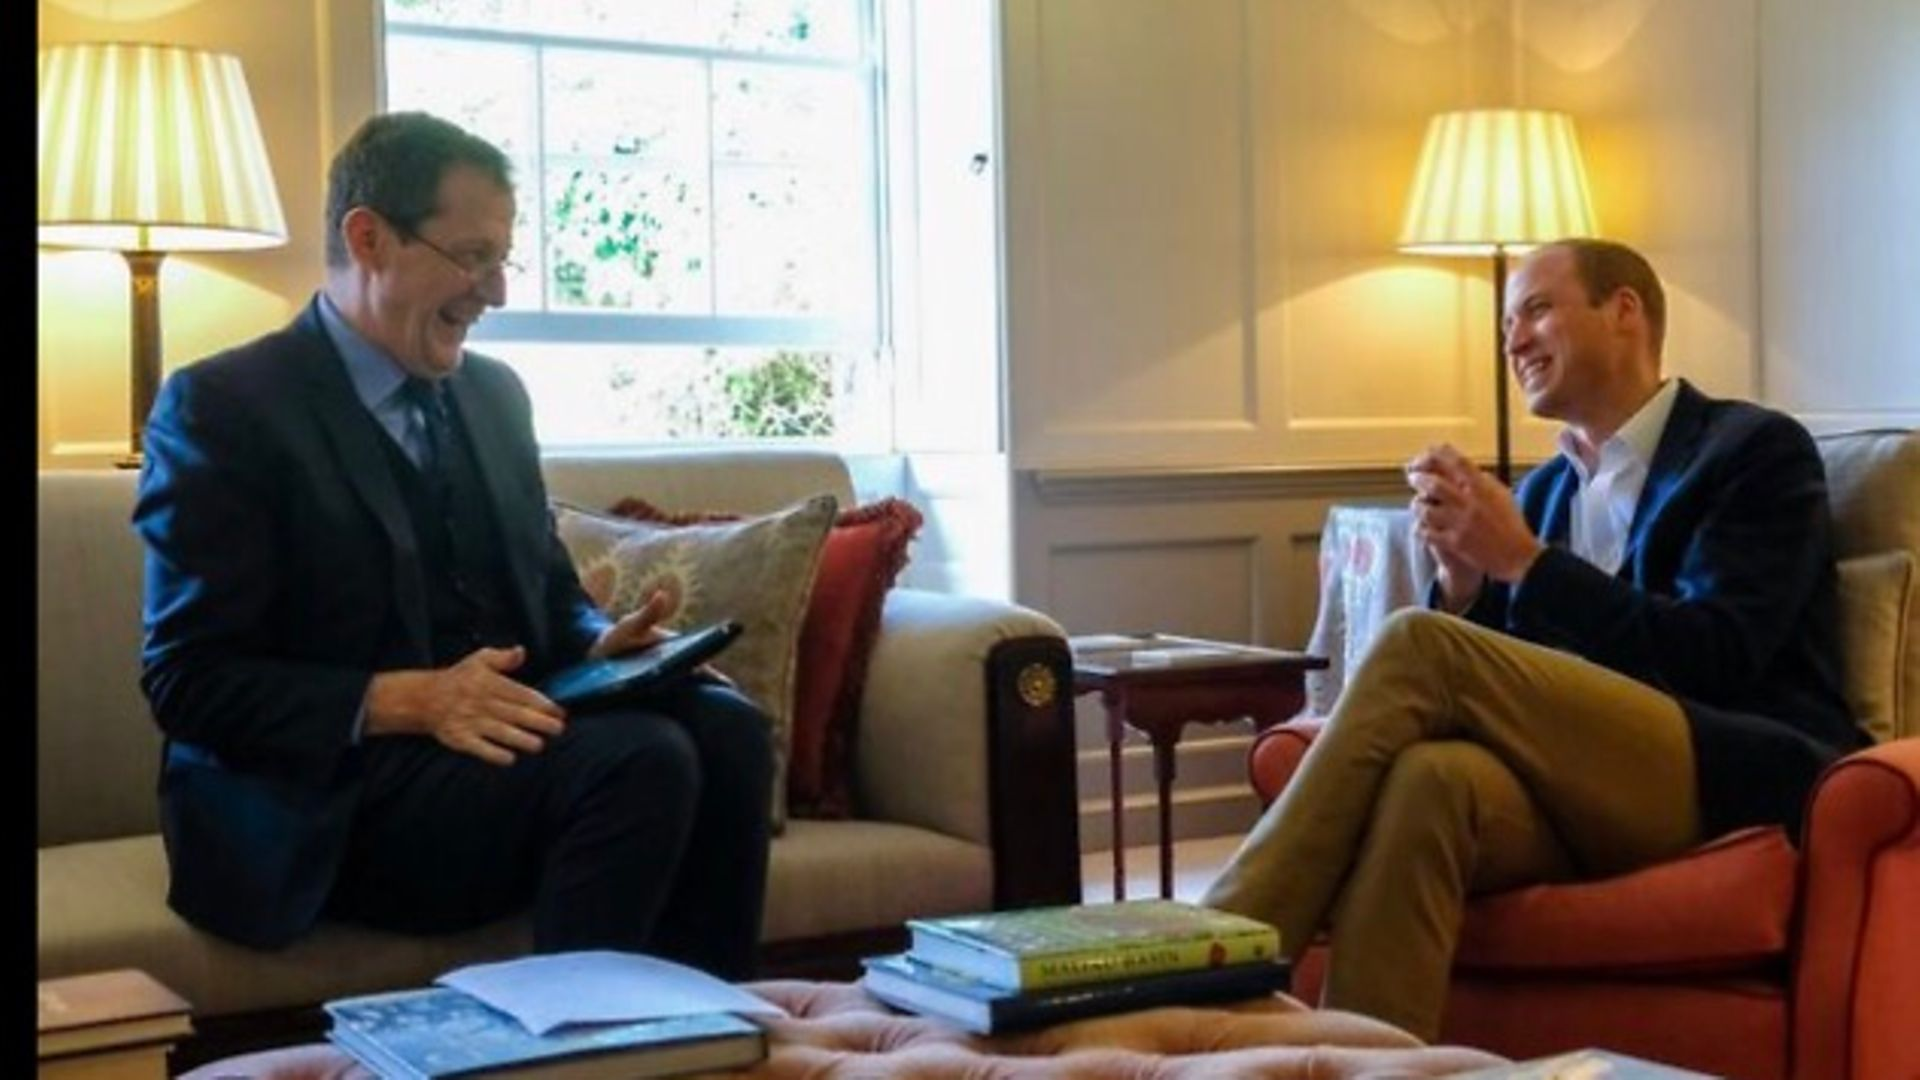 Alastair Campbell interviewing Prince William in 2017 - Credit: Alastair Campbell